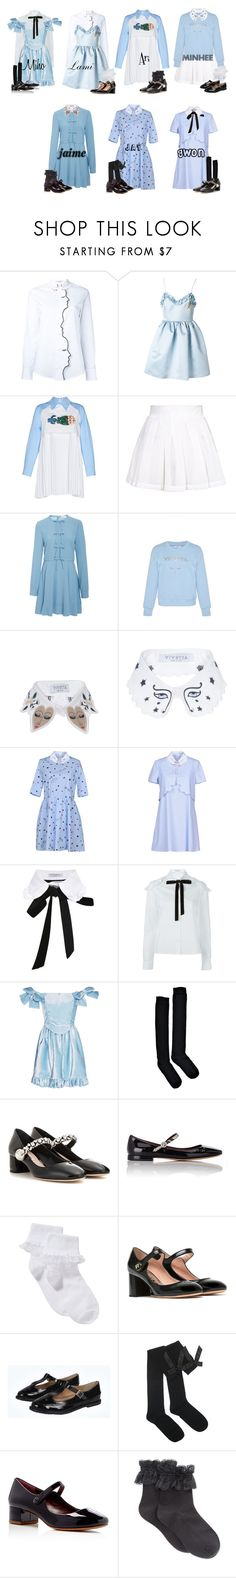 """Amore - Always"" by mikki102 ❤ liked on Polyvore featuring VIVETTA, Topshop, RED Valentino, Boohoo, Miu Miu, Marc Jacobs, John Lewis, Rochas and HUE"